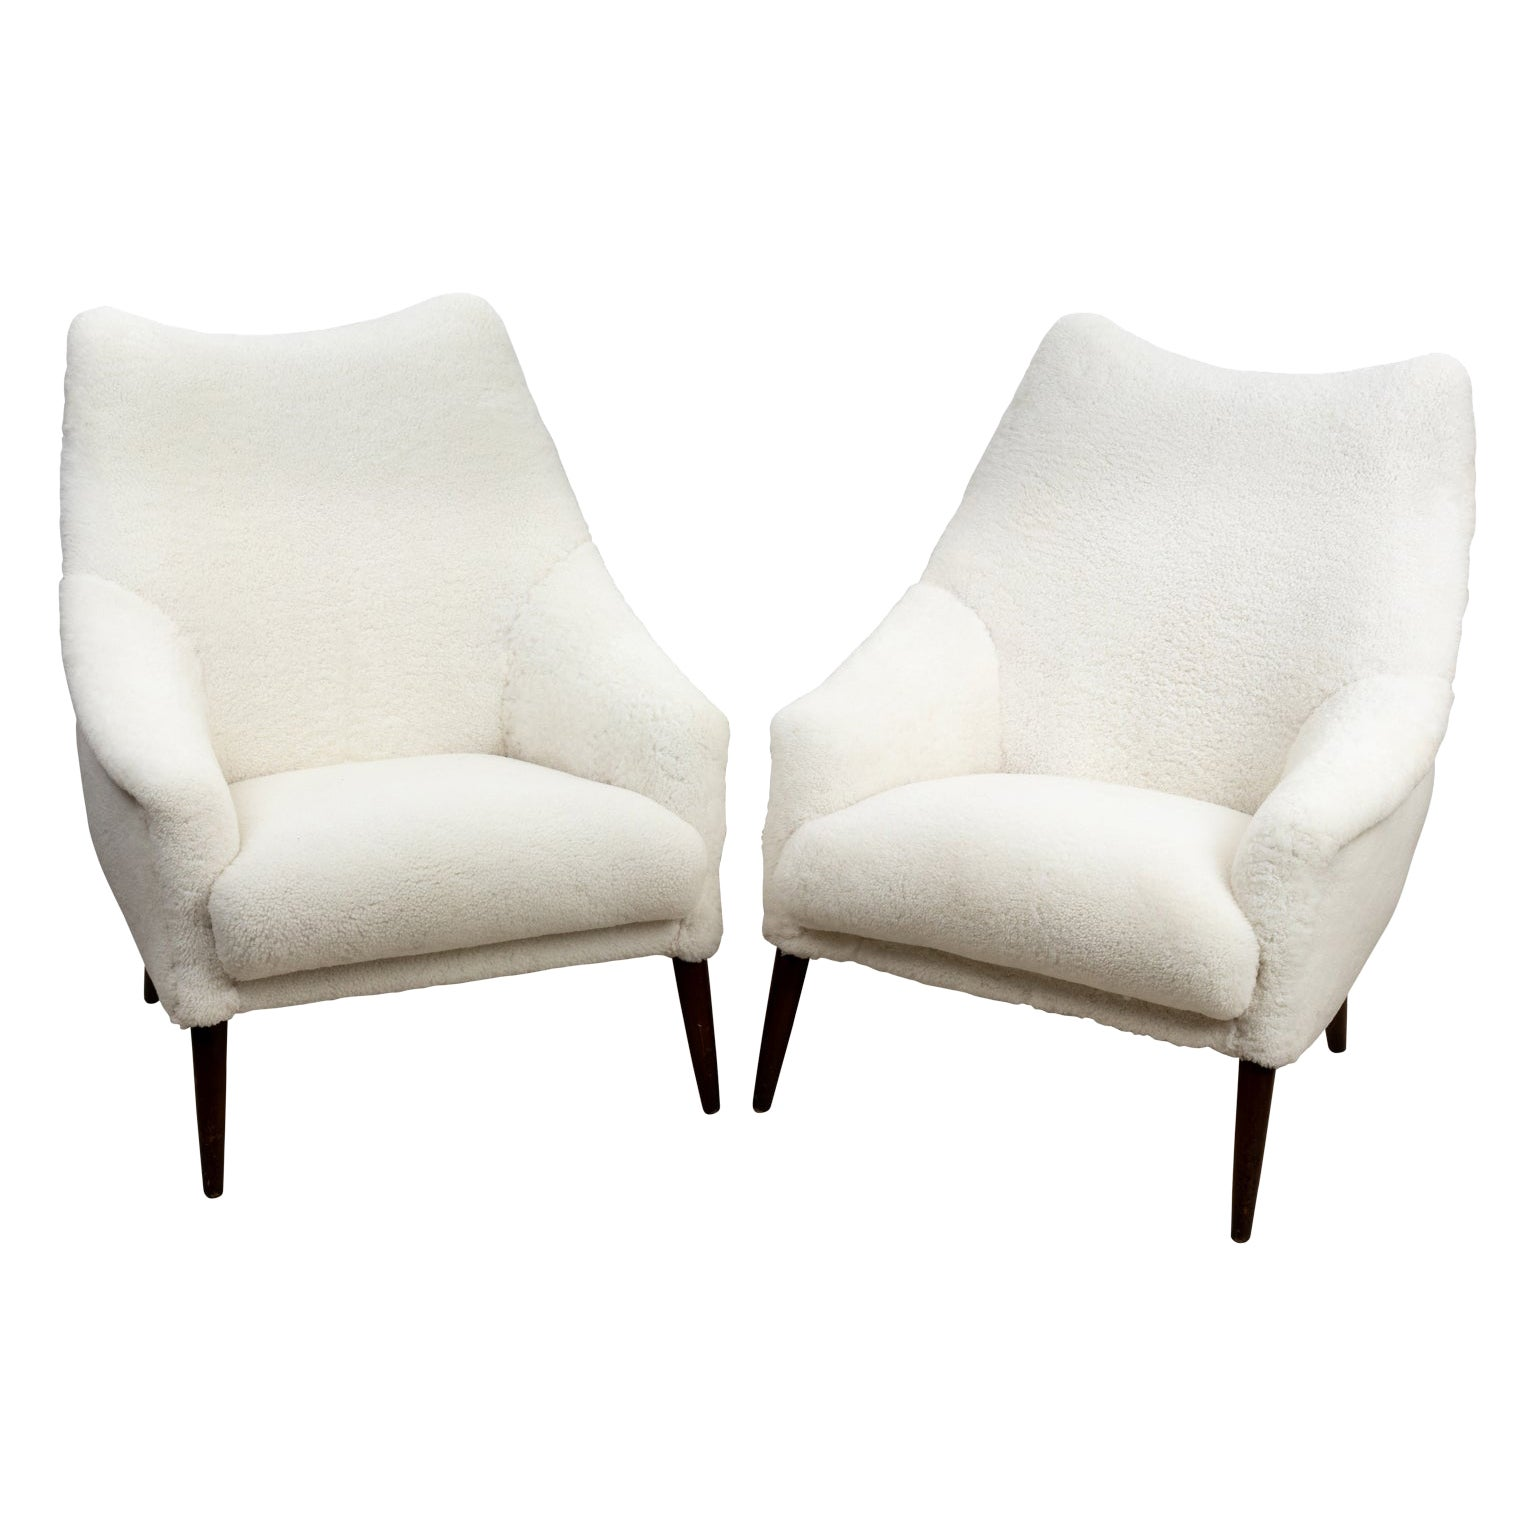 Pair of Shearling Chairs